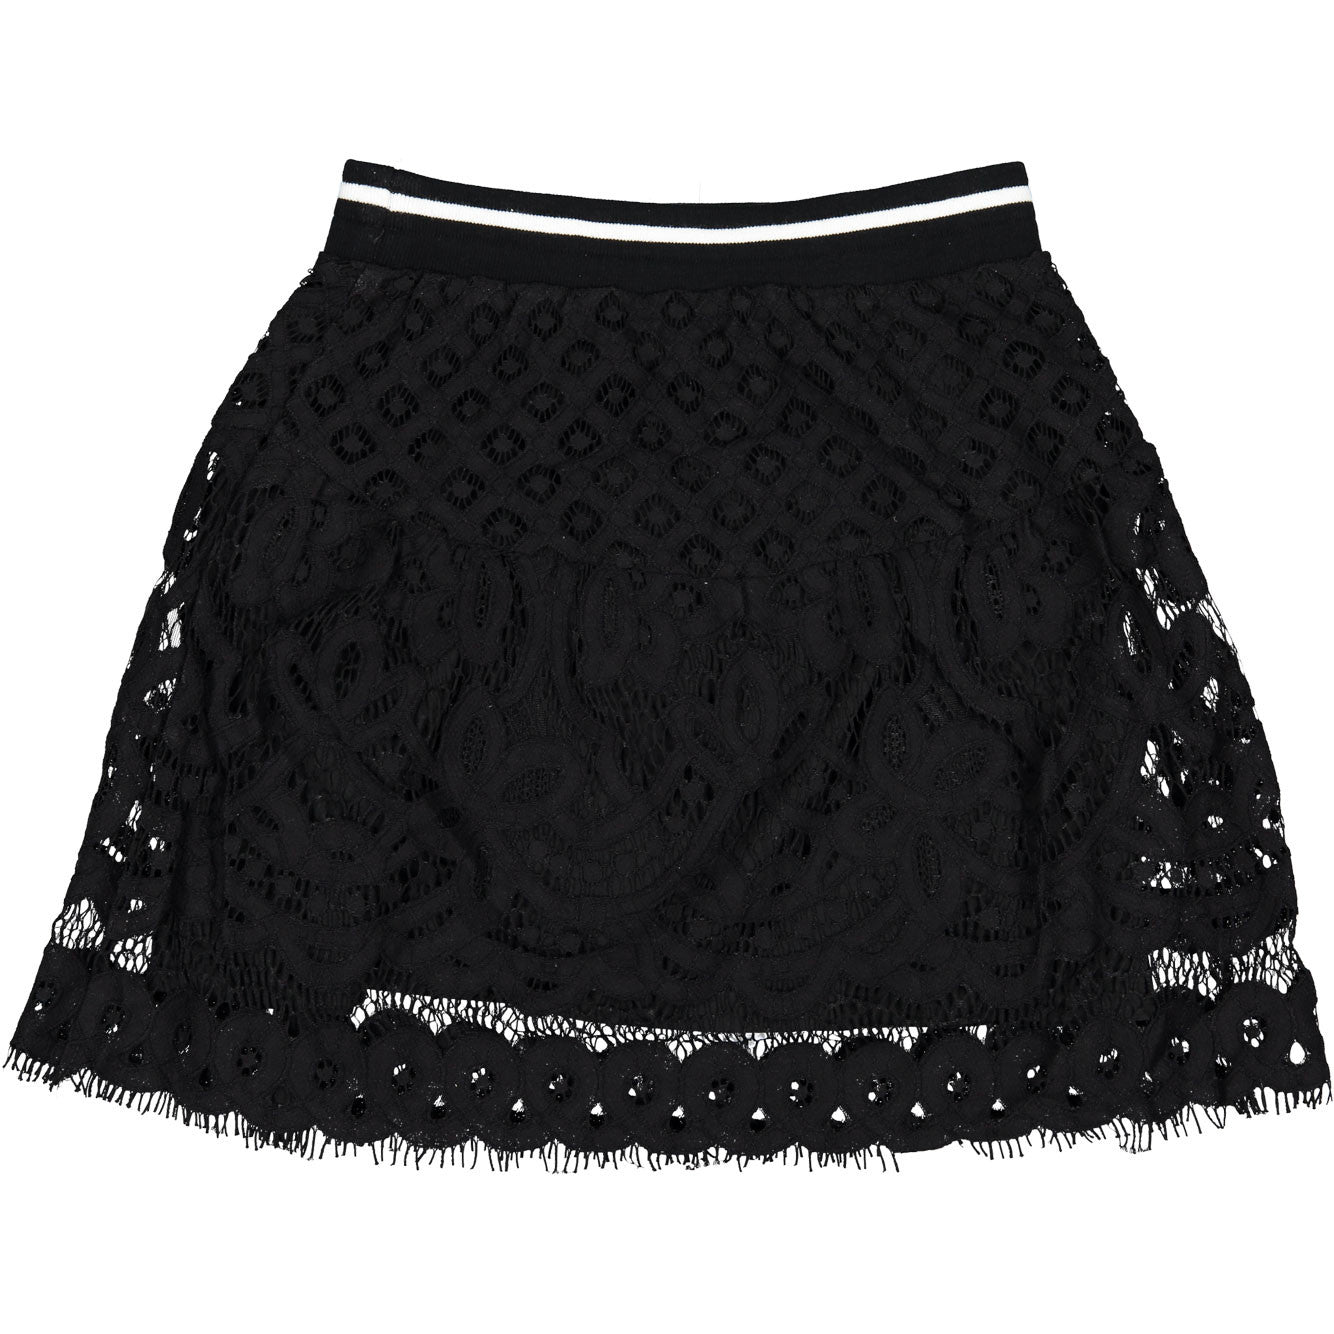 Remix Black Audrey Ruffle Skirt - Ladida